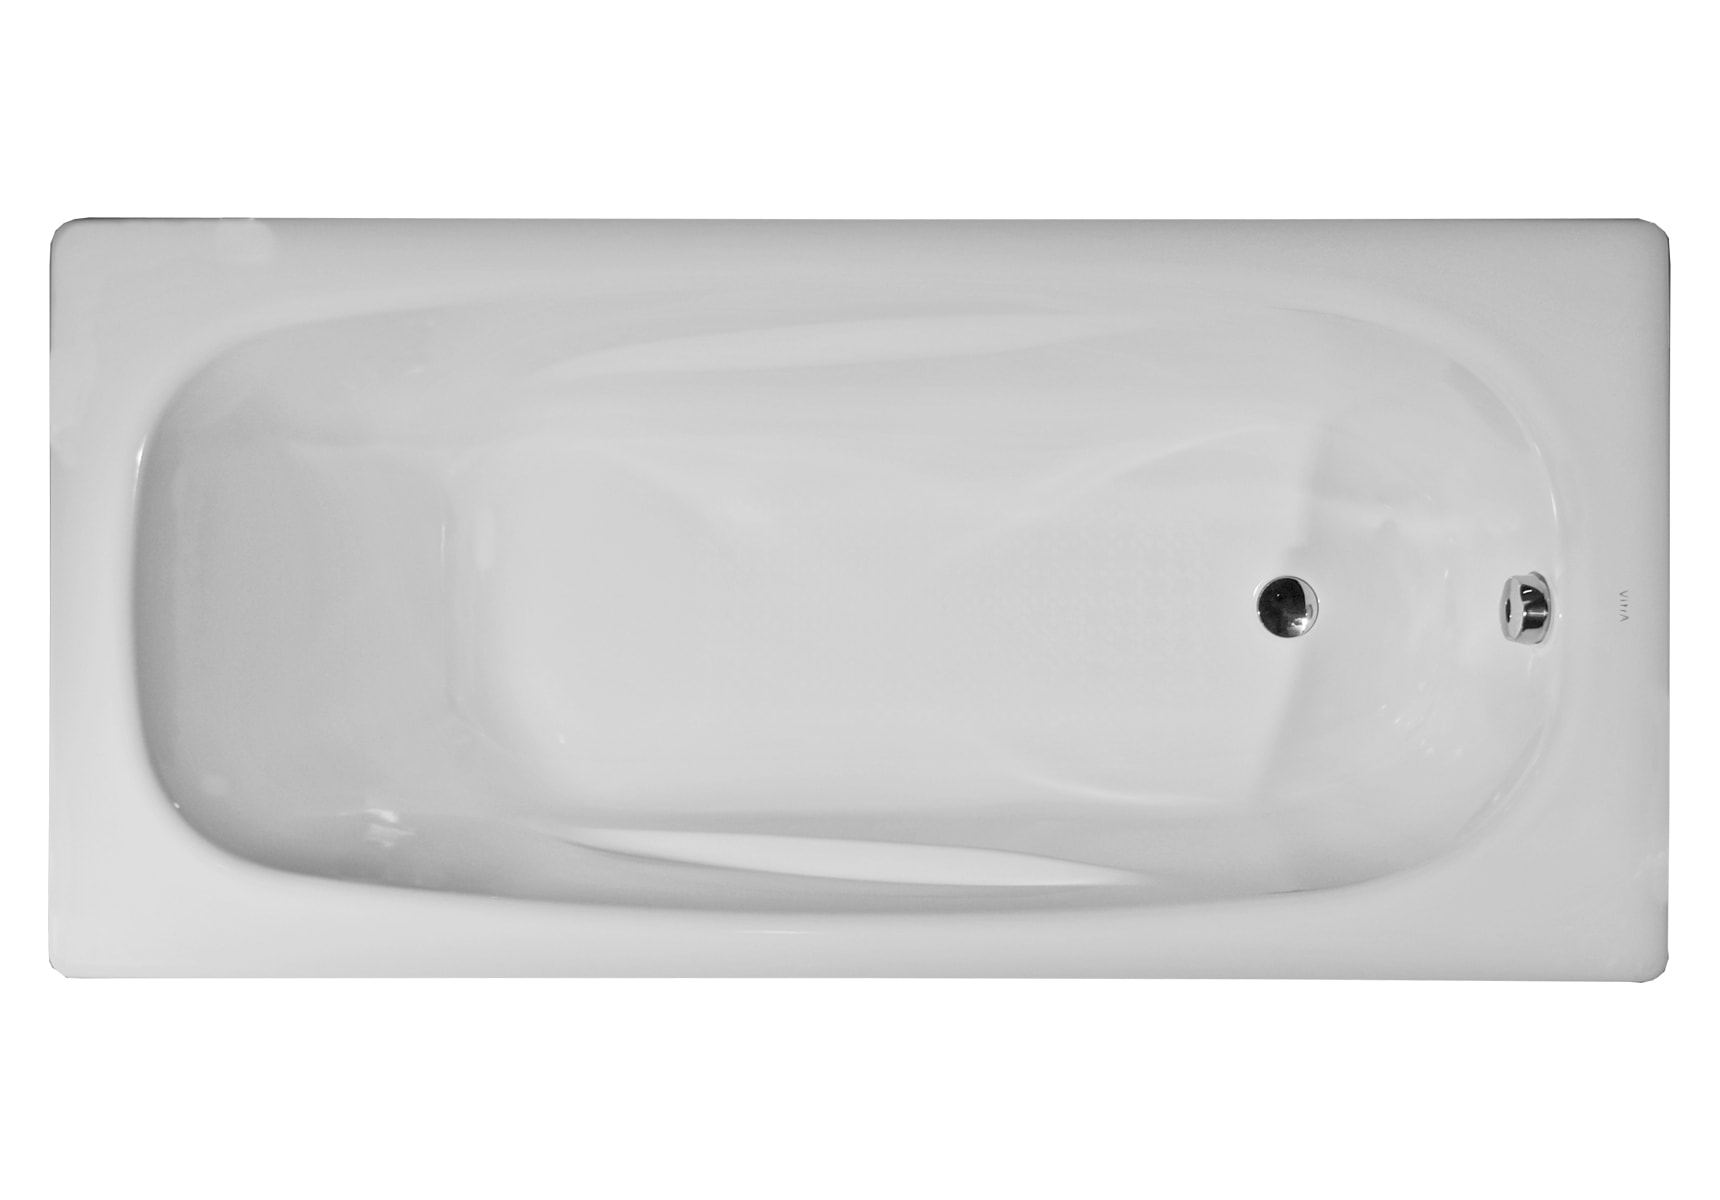 Generic Ergo 160x75cm Steel Bathtub, 3.5mm, Sound Proofing Pad